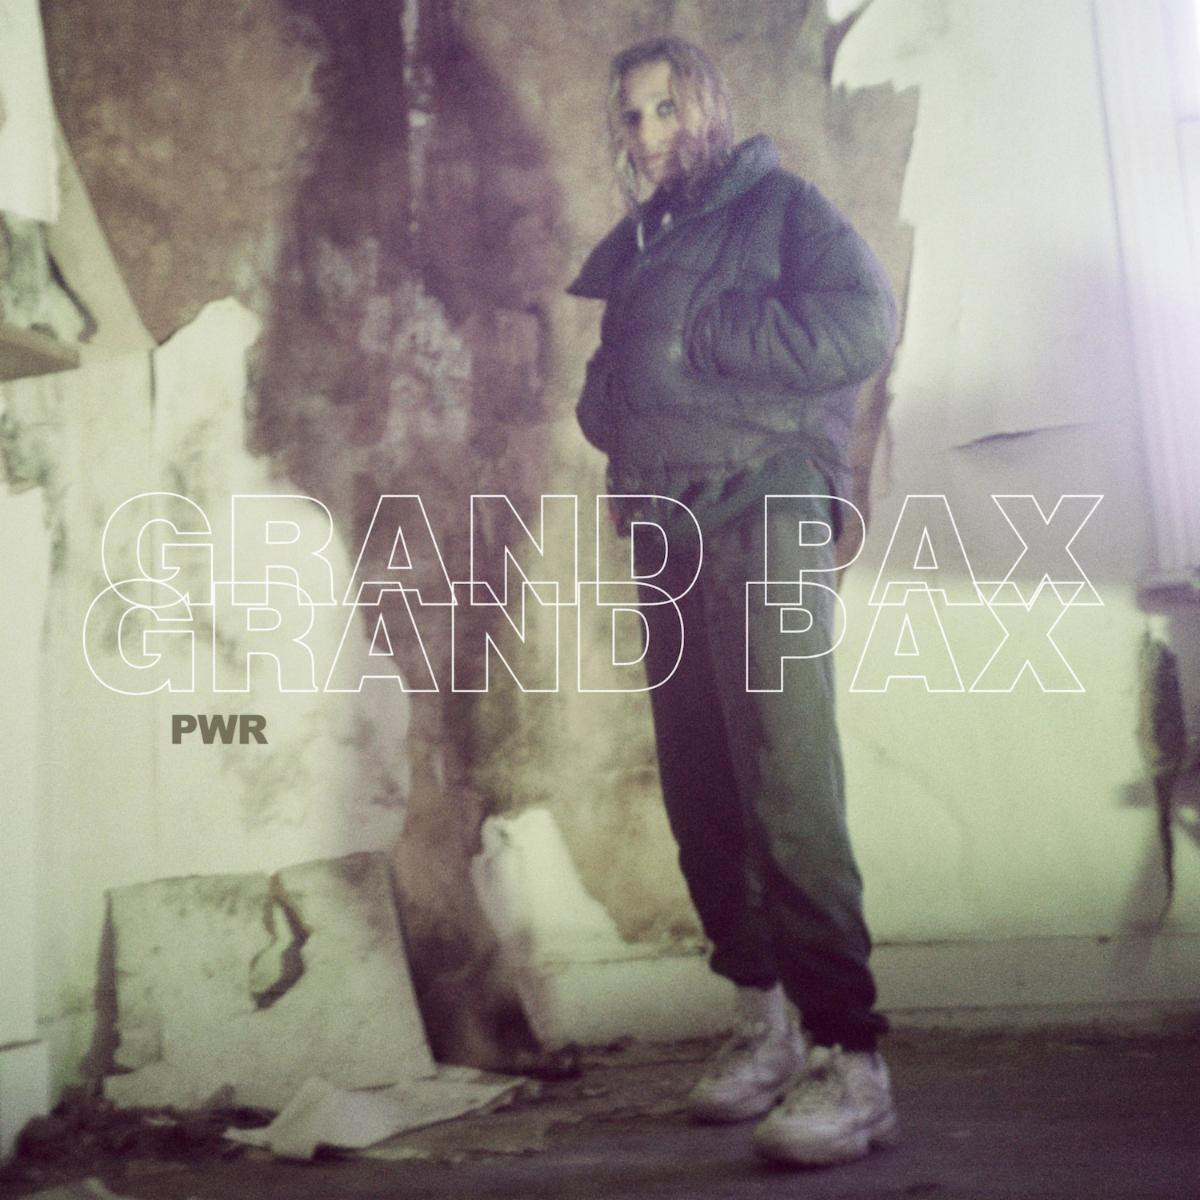 PWR by Grand Pax album review by Steven Ovadia. The singer/songwriter's EP is now out via Blue Flowers and various streaming services